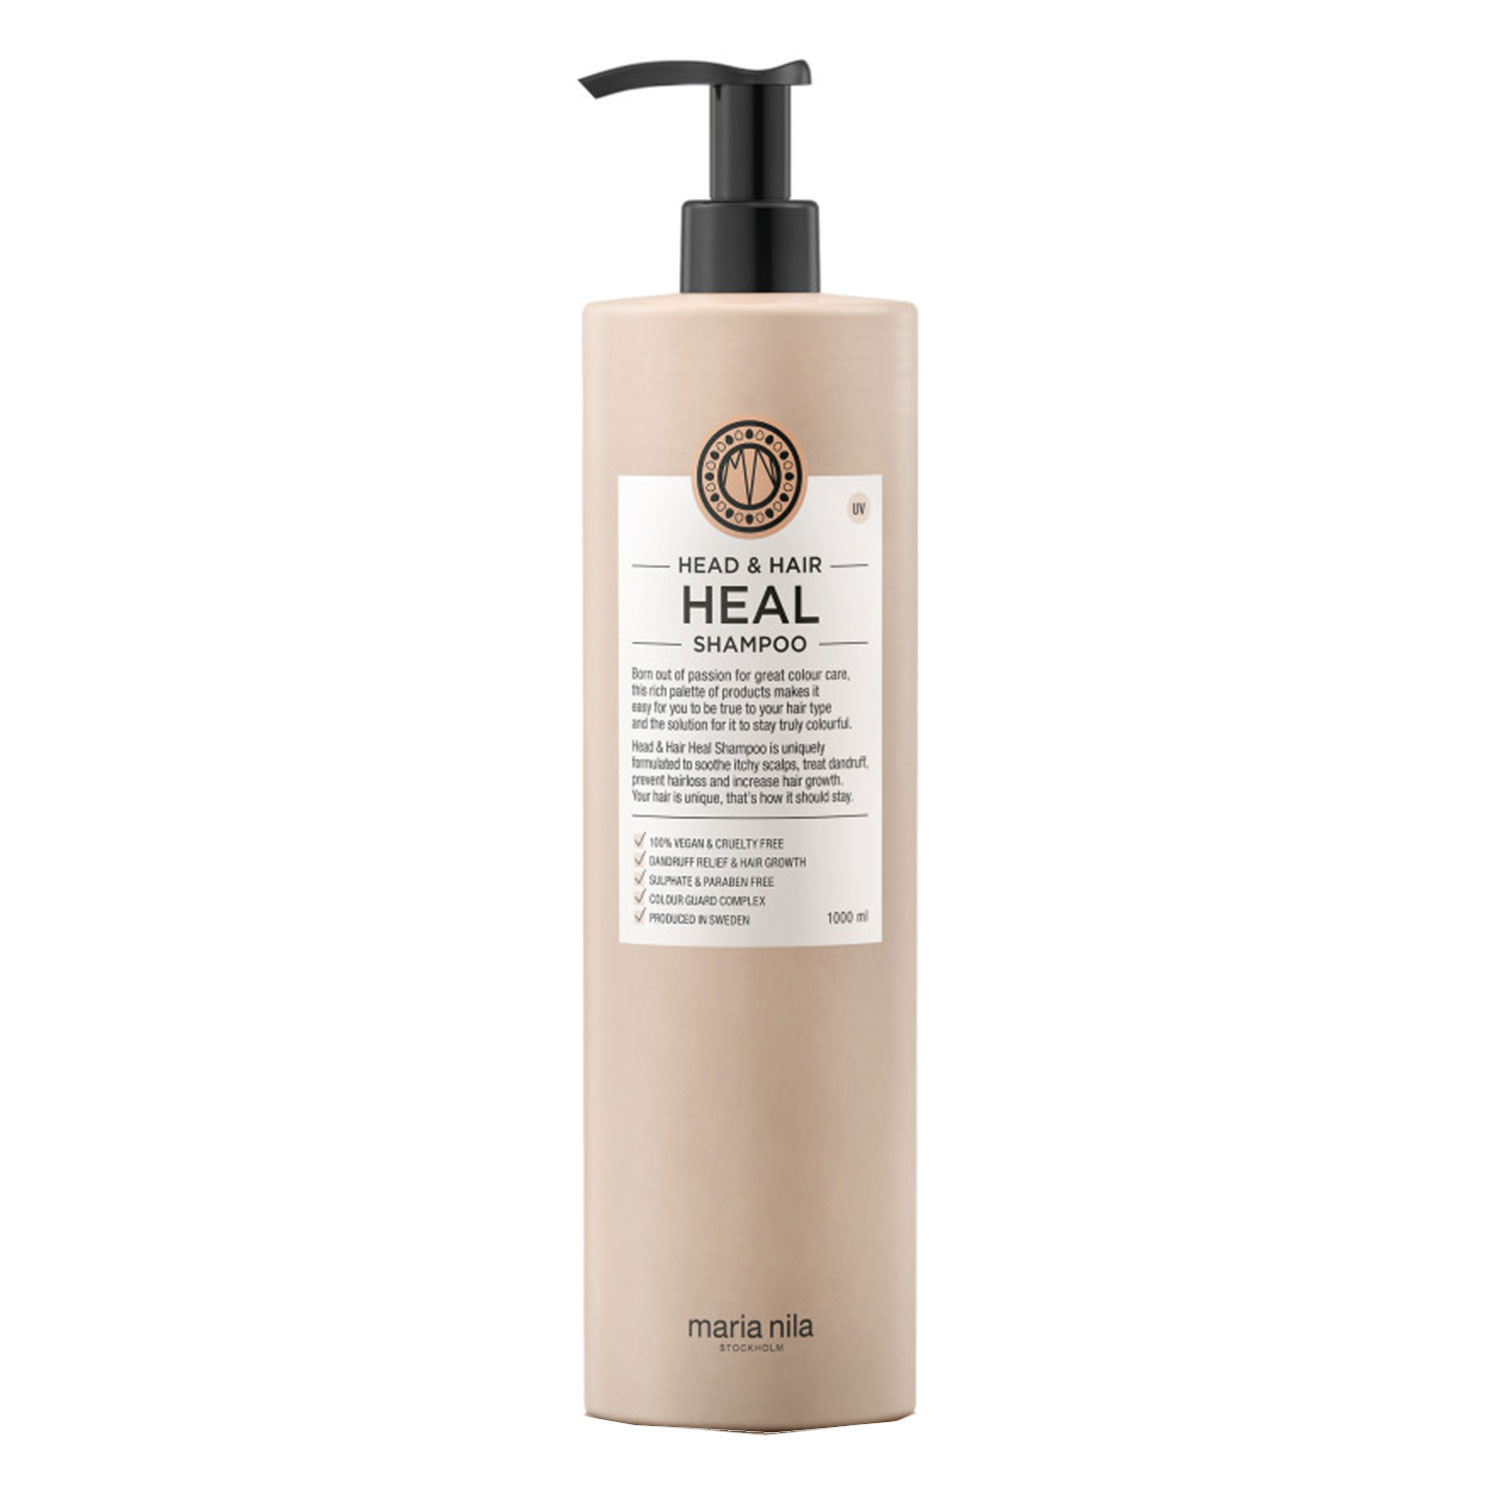 Care & Style - Head & Hair Heal Shampoo - 350ml